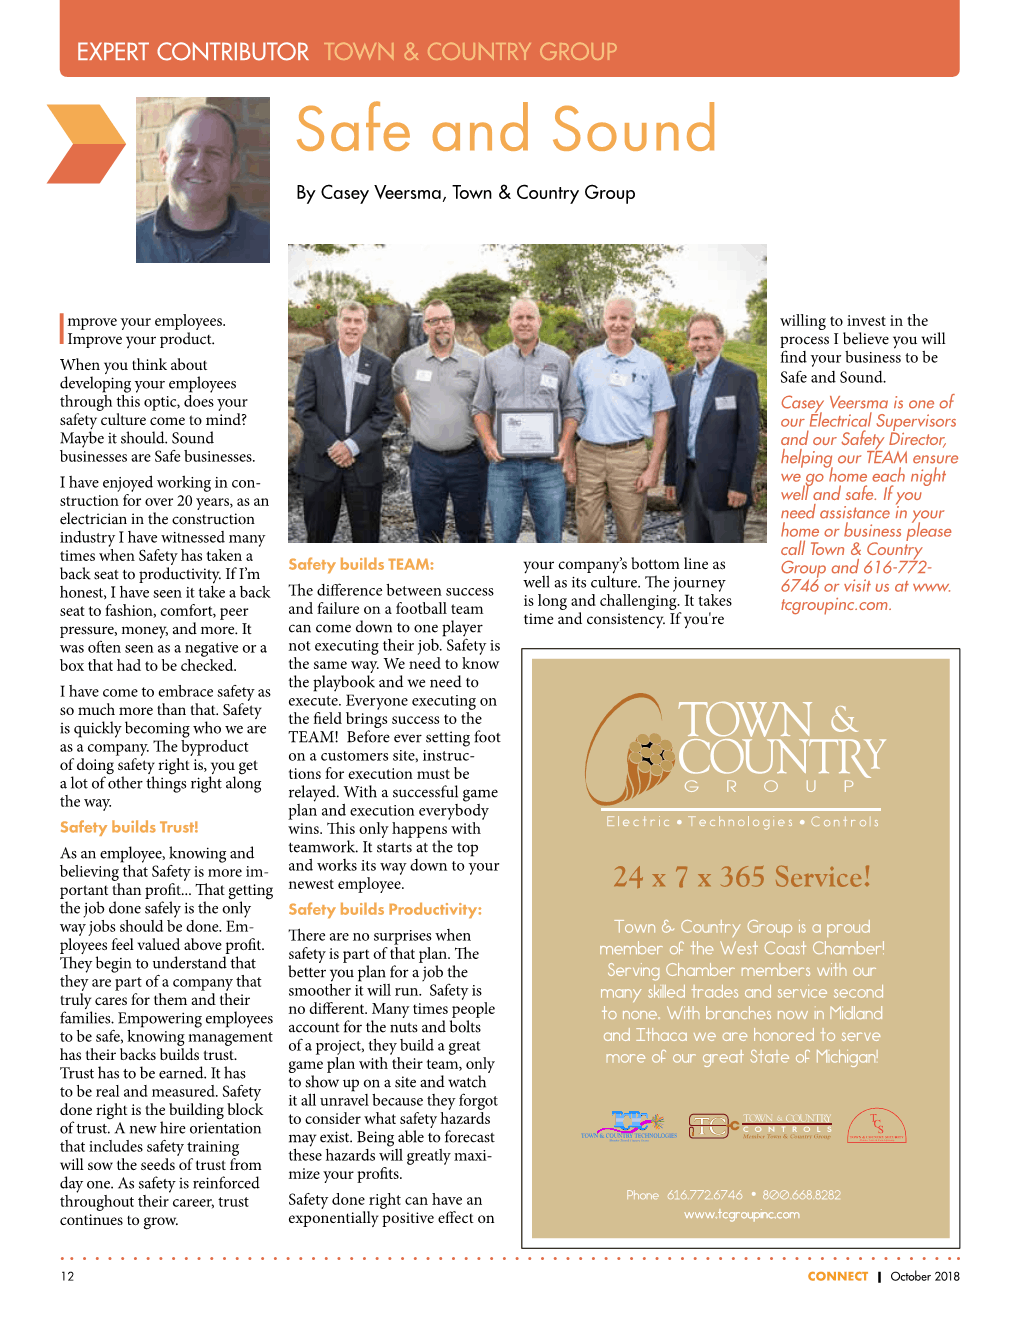 A recent article by our staff on Momentum.  Published in the West Coast Chamber of Commerce, Connect October 2018 edition.